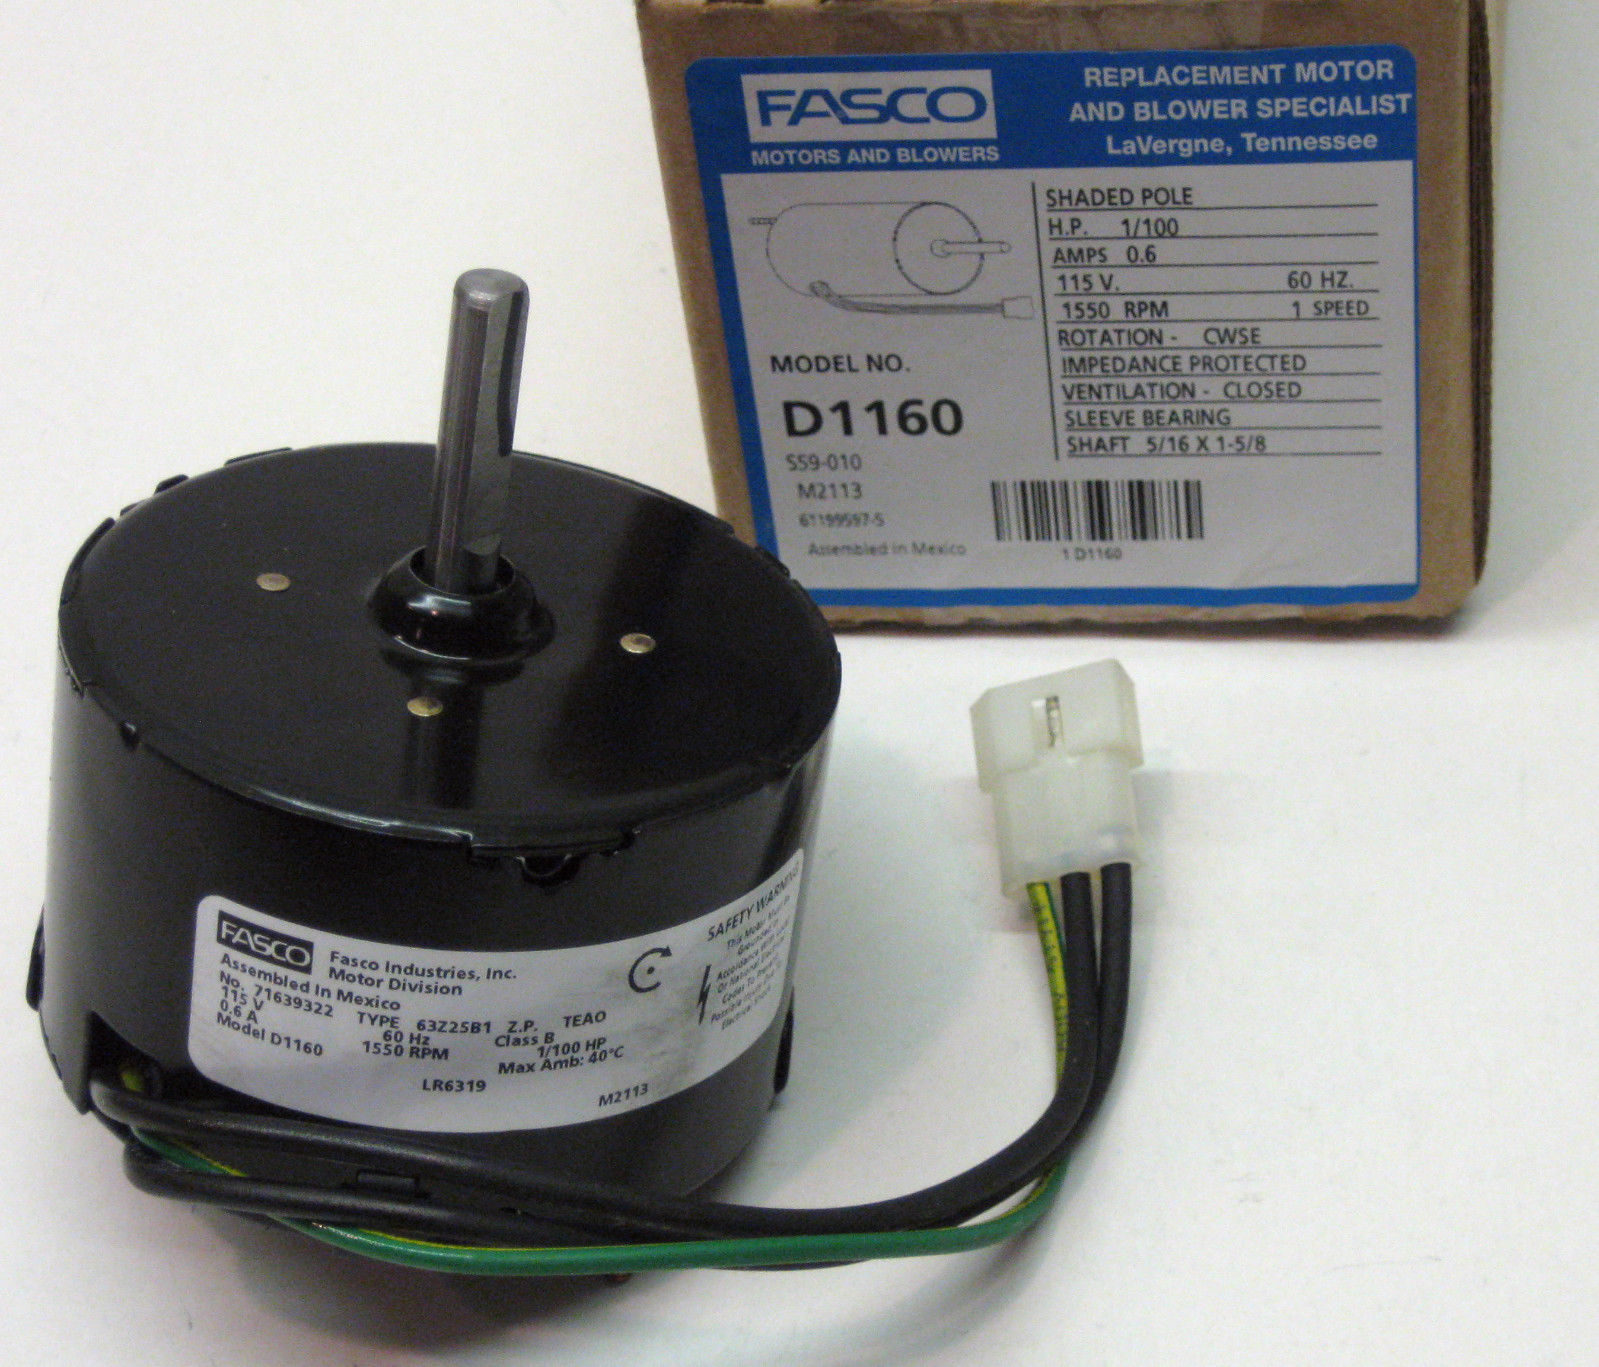 d1160 fasco bathroom fan vent motor for 7163 2593 655 661 663 655n 668 763 768 - Bathroom Fan Motor Replacement